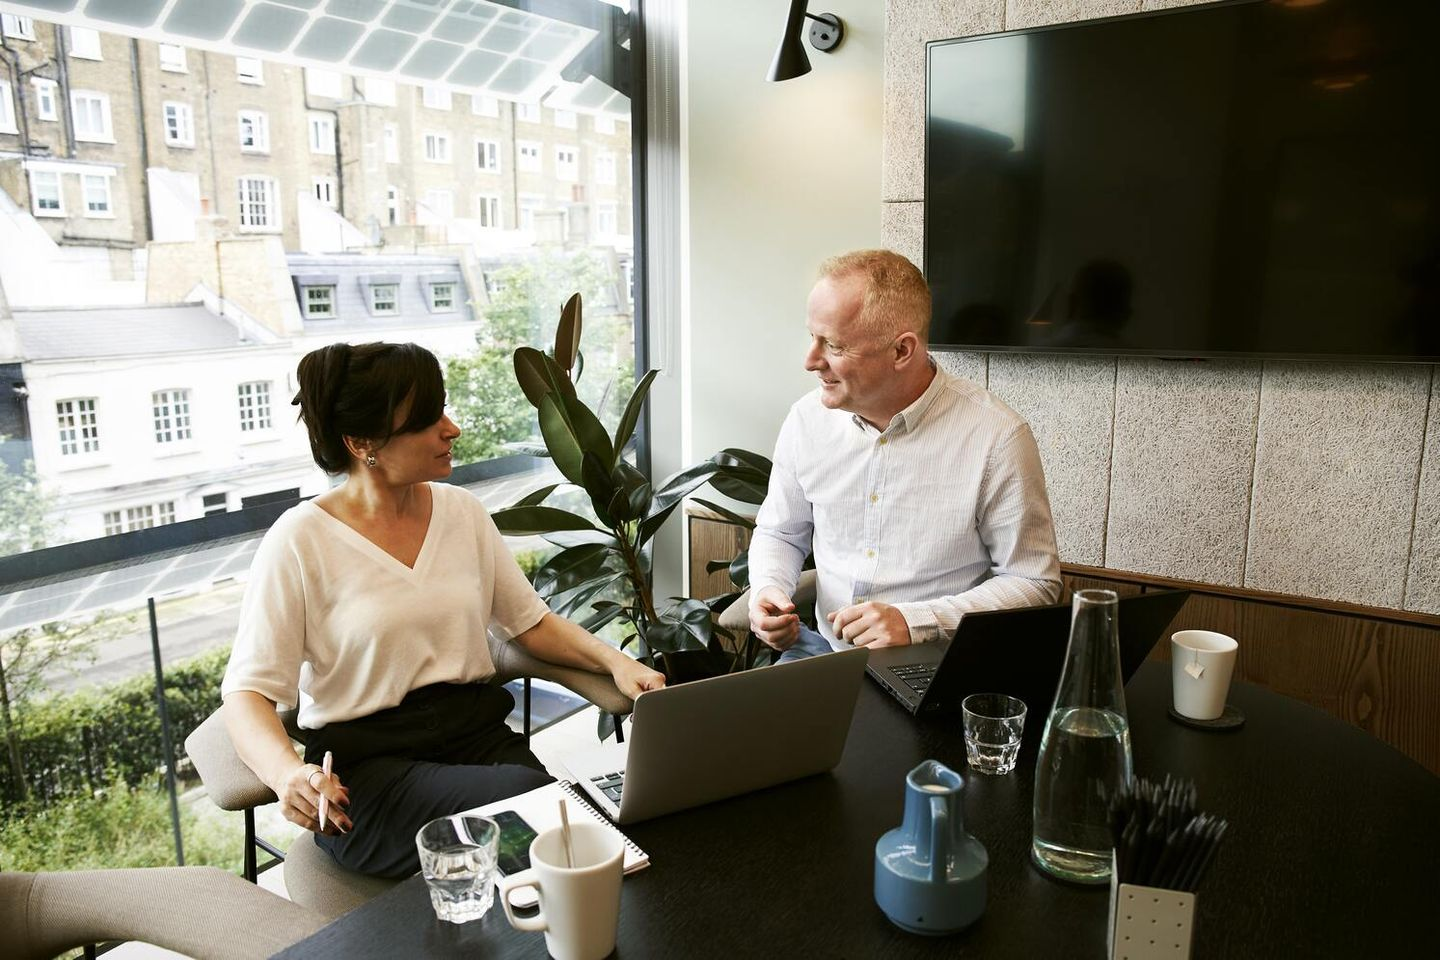 A freelance consultant and a client sit in an office at a desk discussing digital marketing